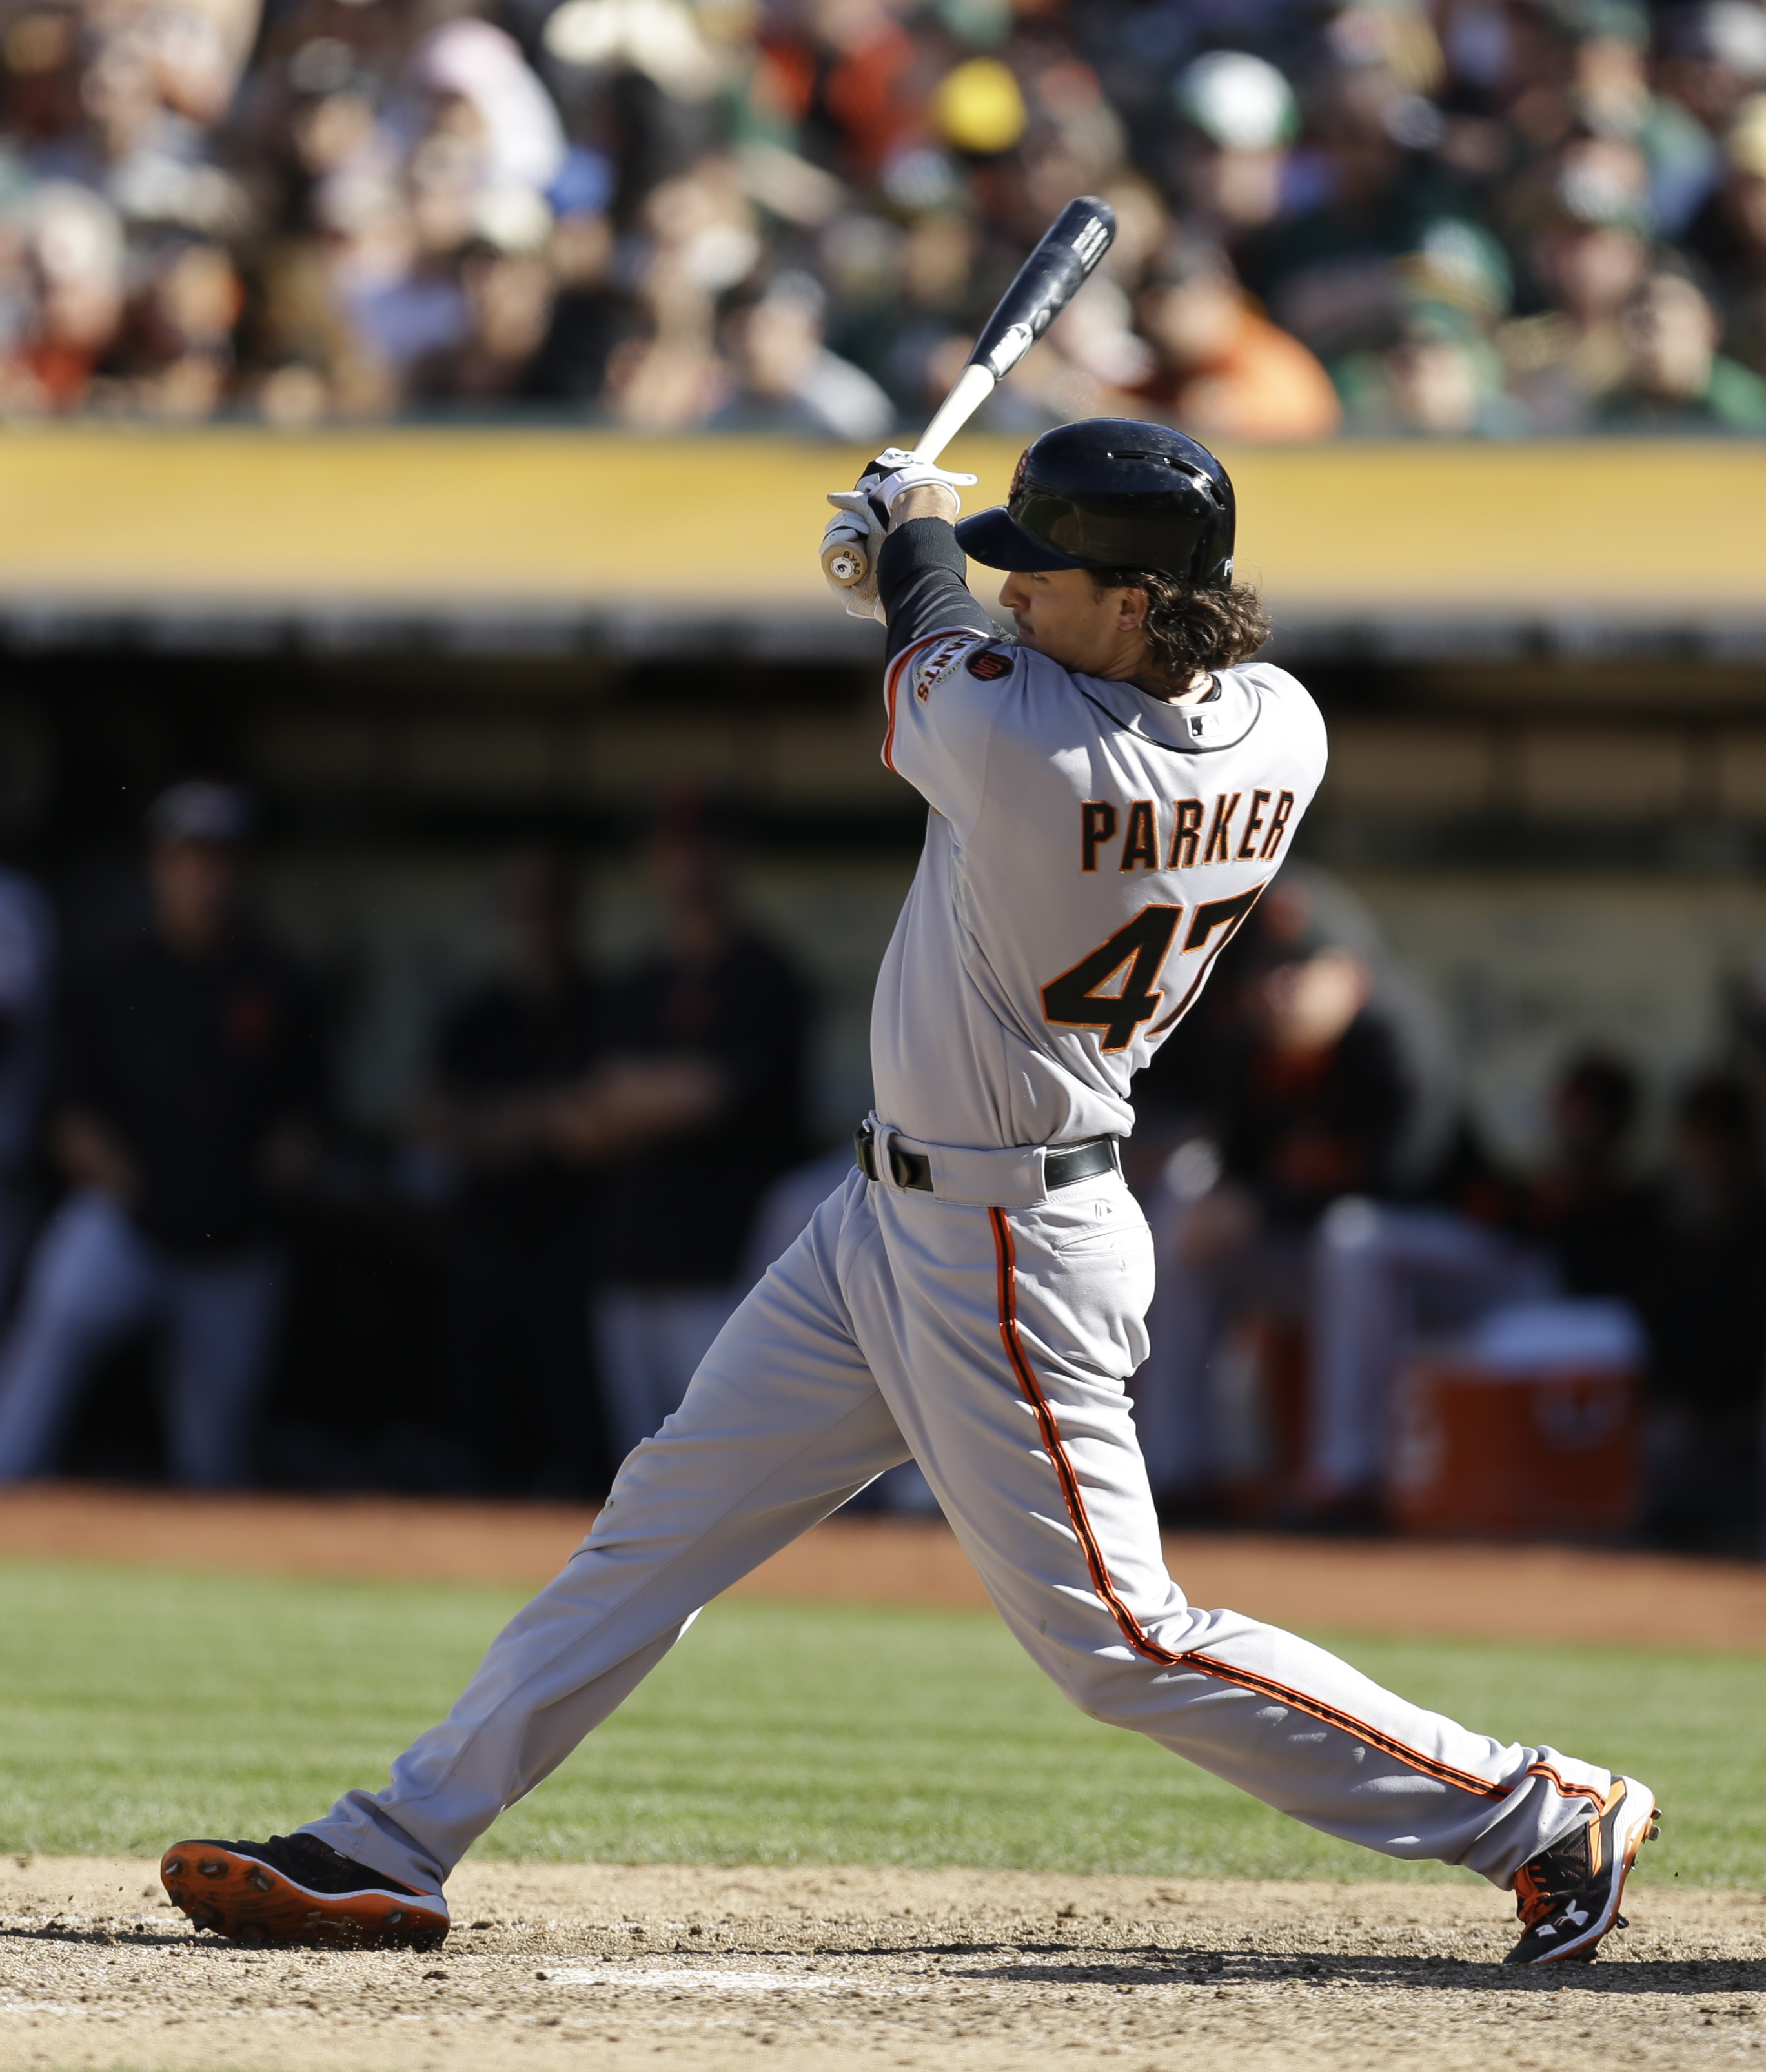 San Francisco Giants' Jarrett Parker swings for a grand slam off Oakland Athletics' Ryan Dull in the eighth inning of a baseball game Saturday, Sept. 26, 2015, in Oakland, Calif. (AP Photo/Ben Margot)